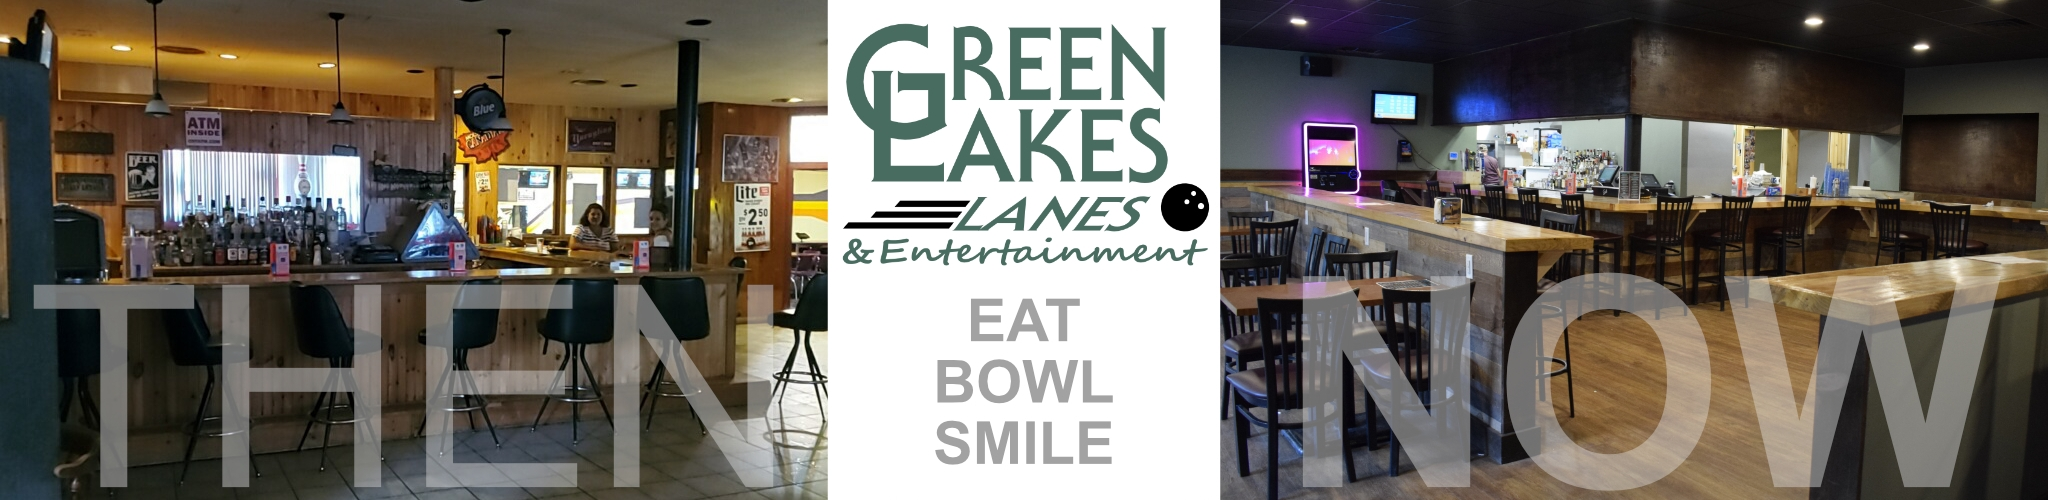 Eat Bowl Smile